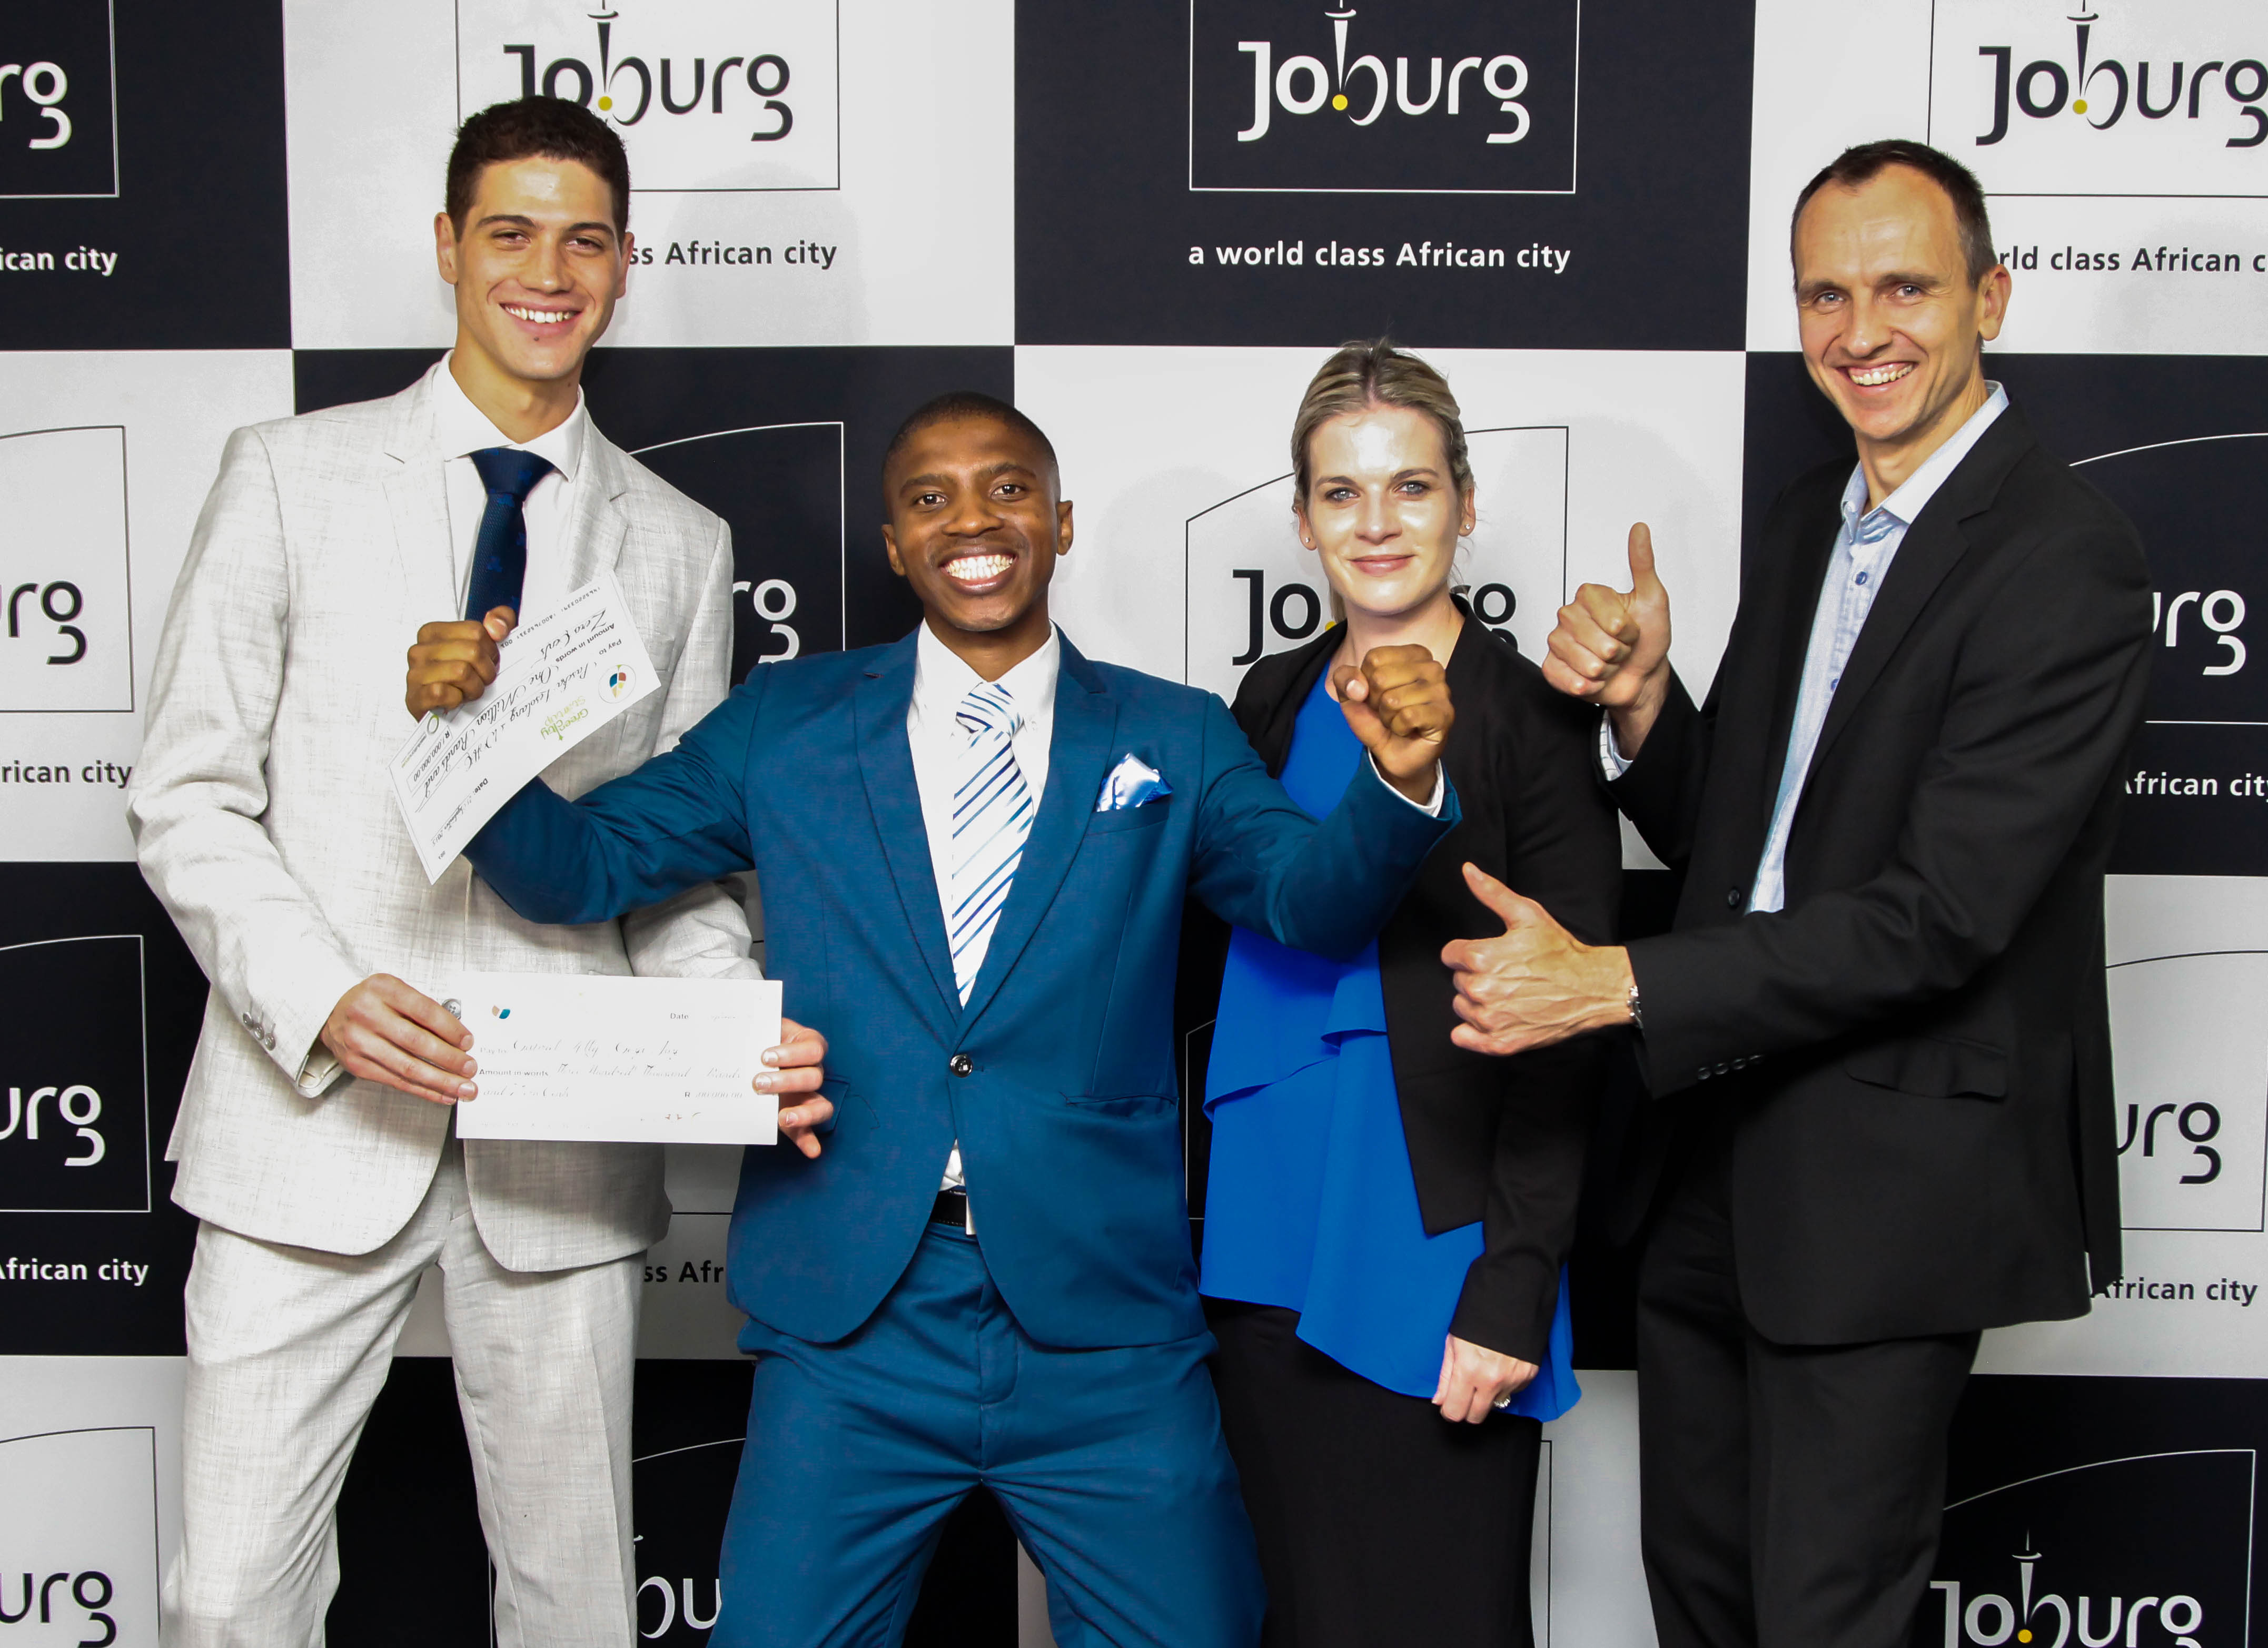 From left to right: Gabriel-Ally, Paseka-Lesolang, Yolandi-Schoeman and Sean-Moolman